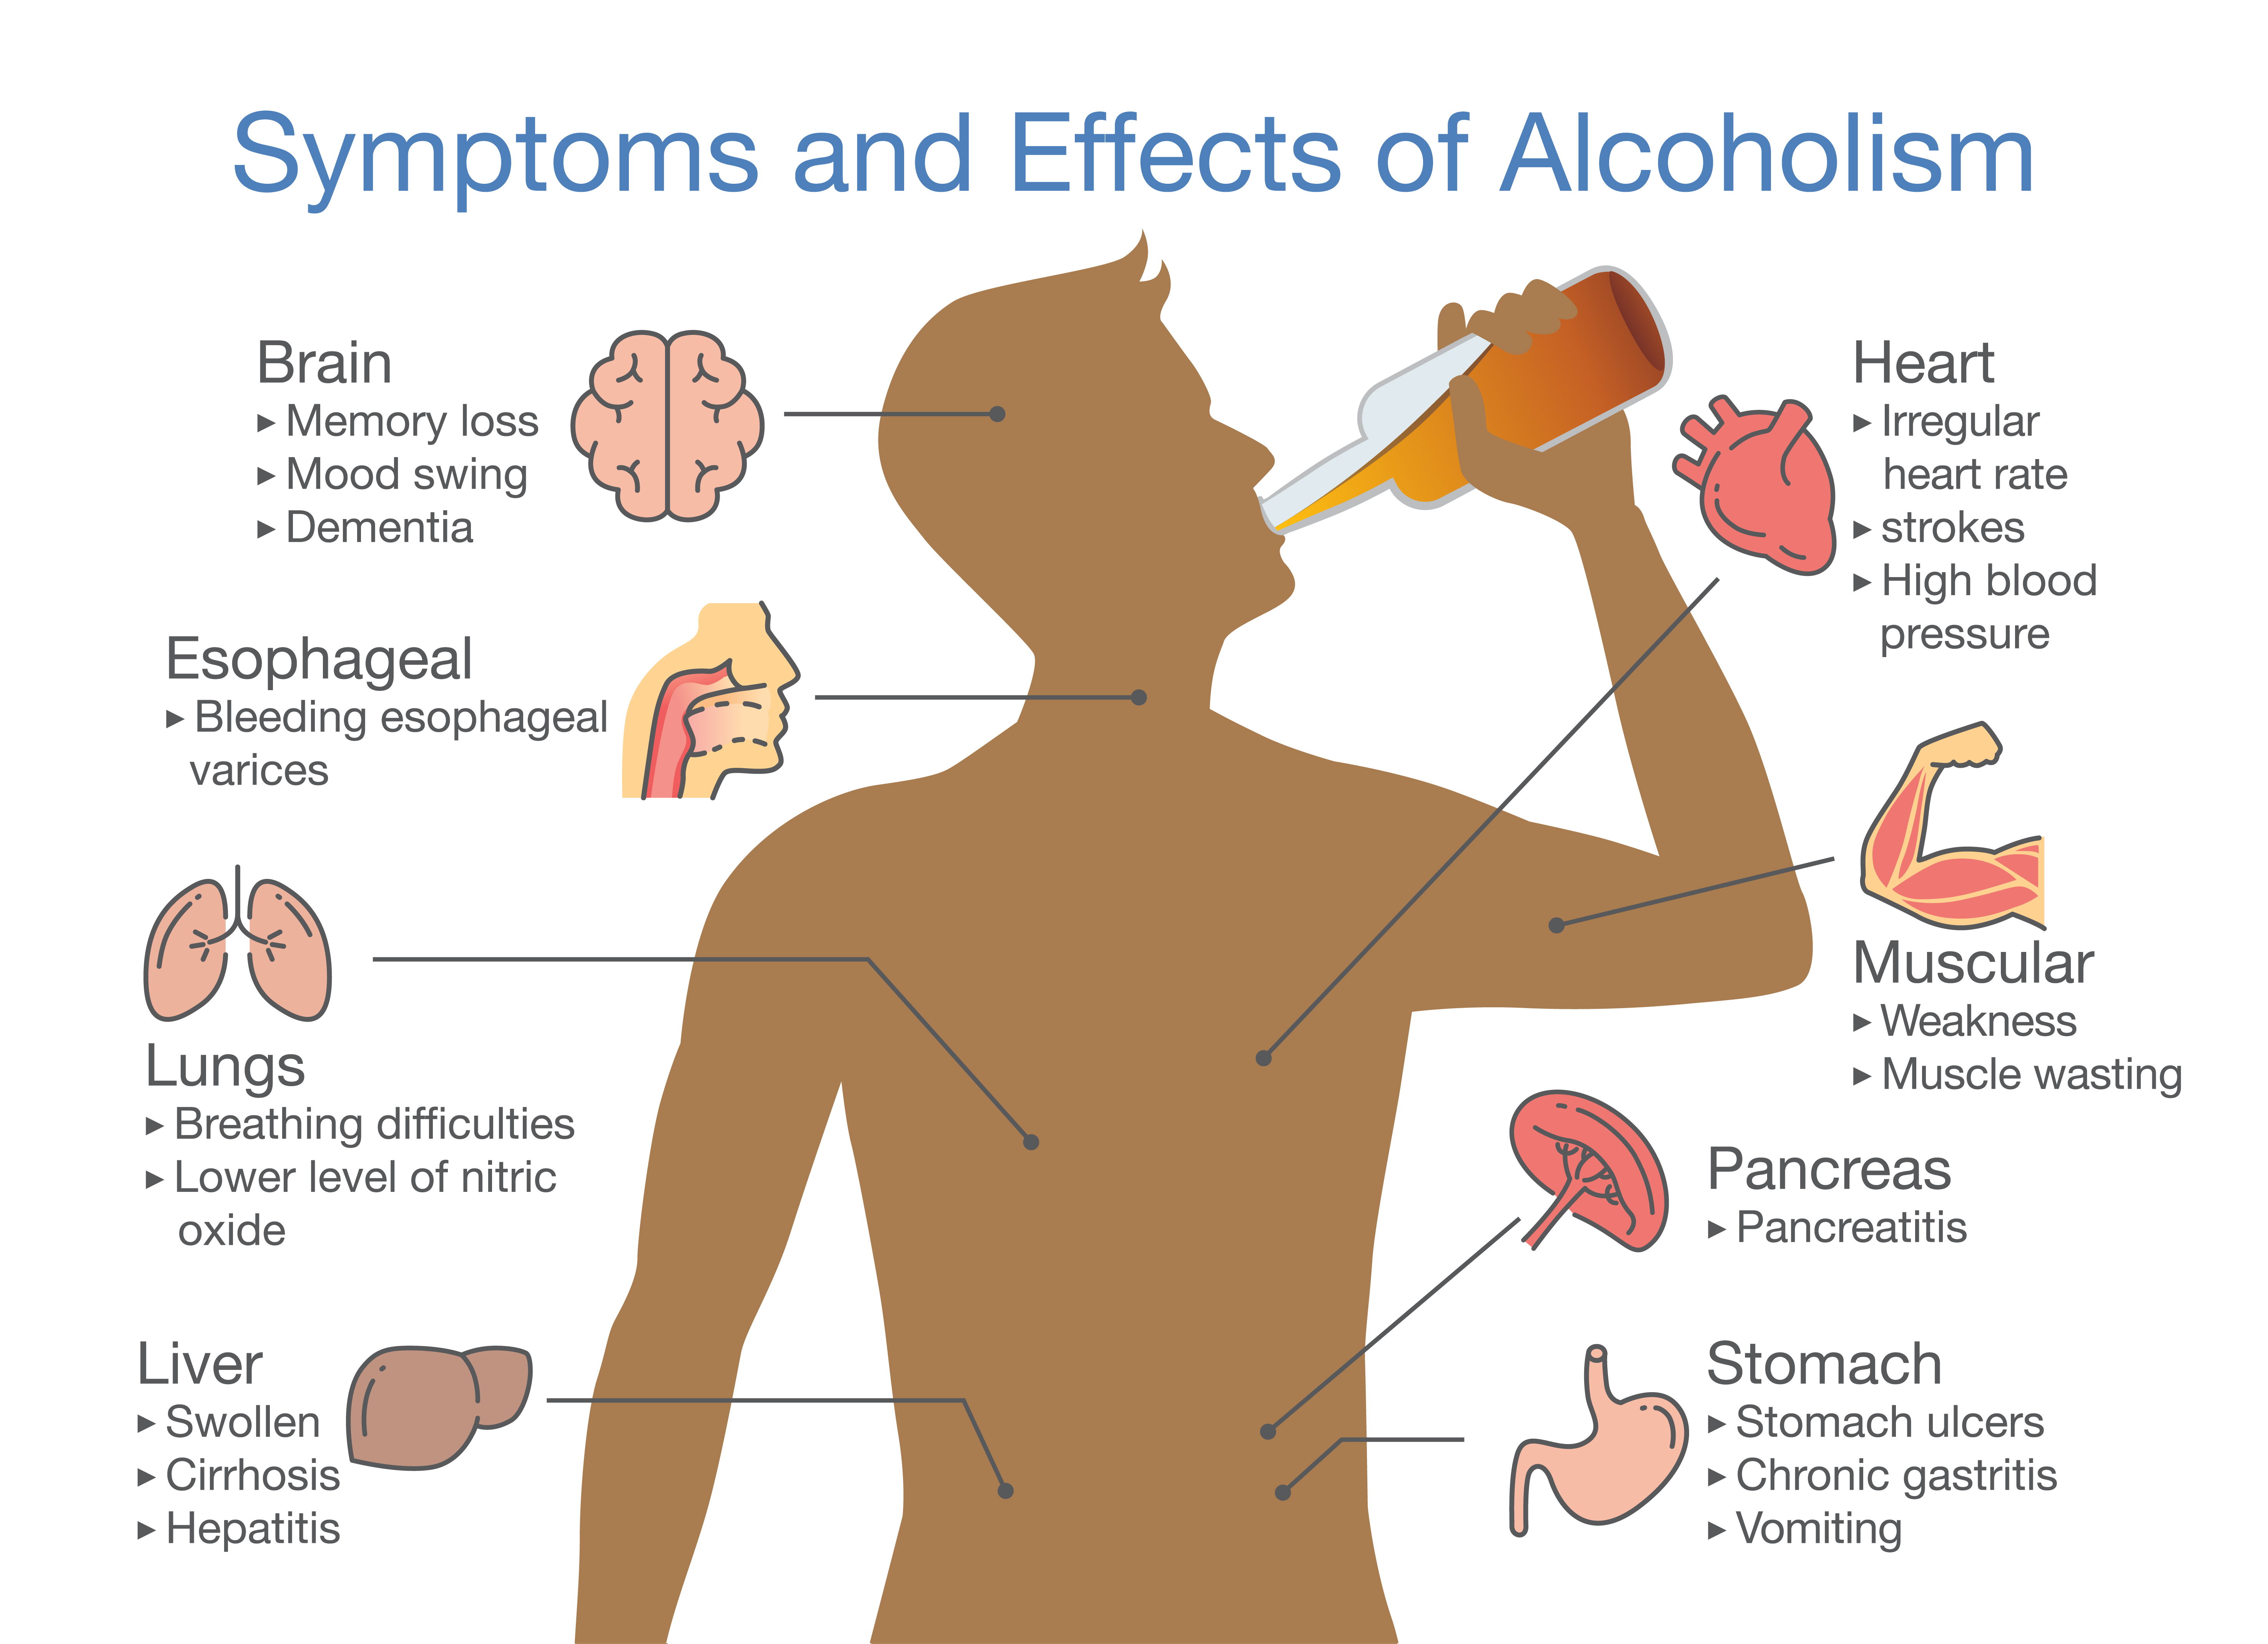 Effects of overusing alcohol